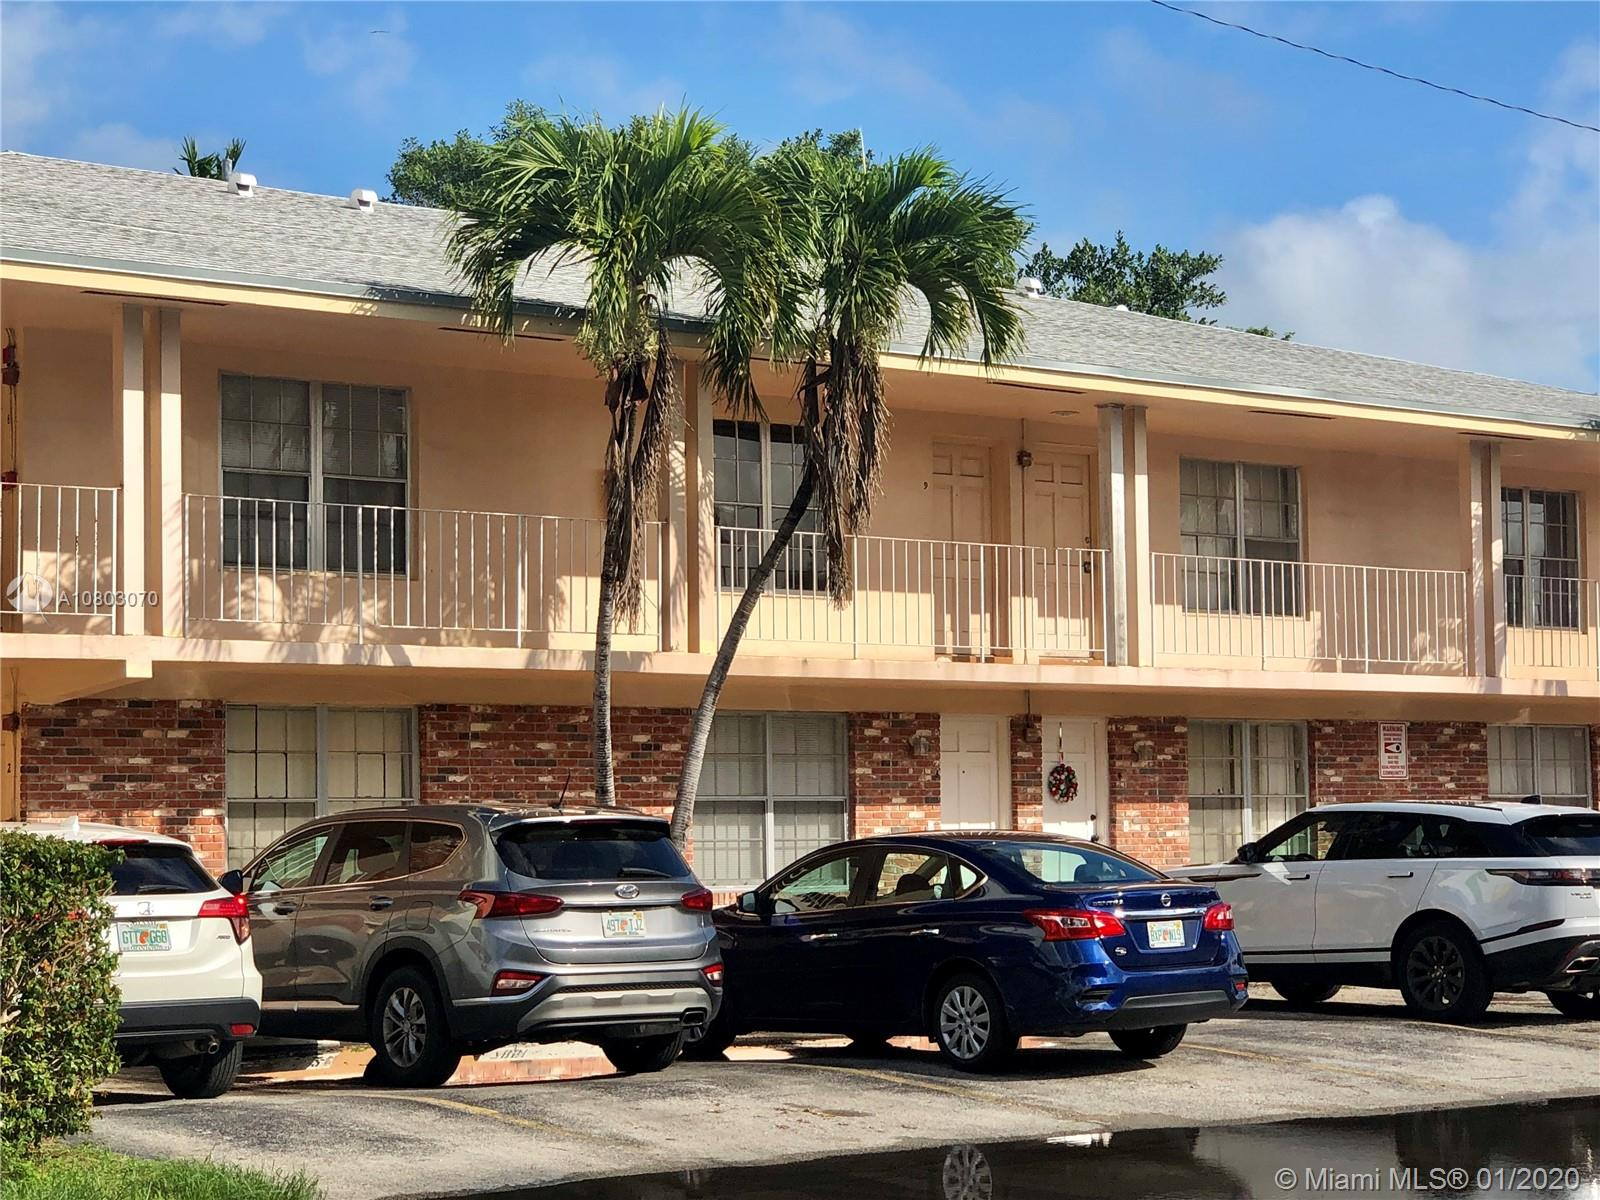 7851 Dunham Blvd # 2, Miami, Florida 33138, 1 Bedroom Bedrooms, ,1 BathroomBathrooms,Residential,For Sale,7851 Dunham Blvd # 2,A10803070